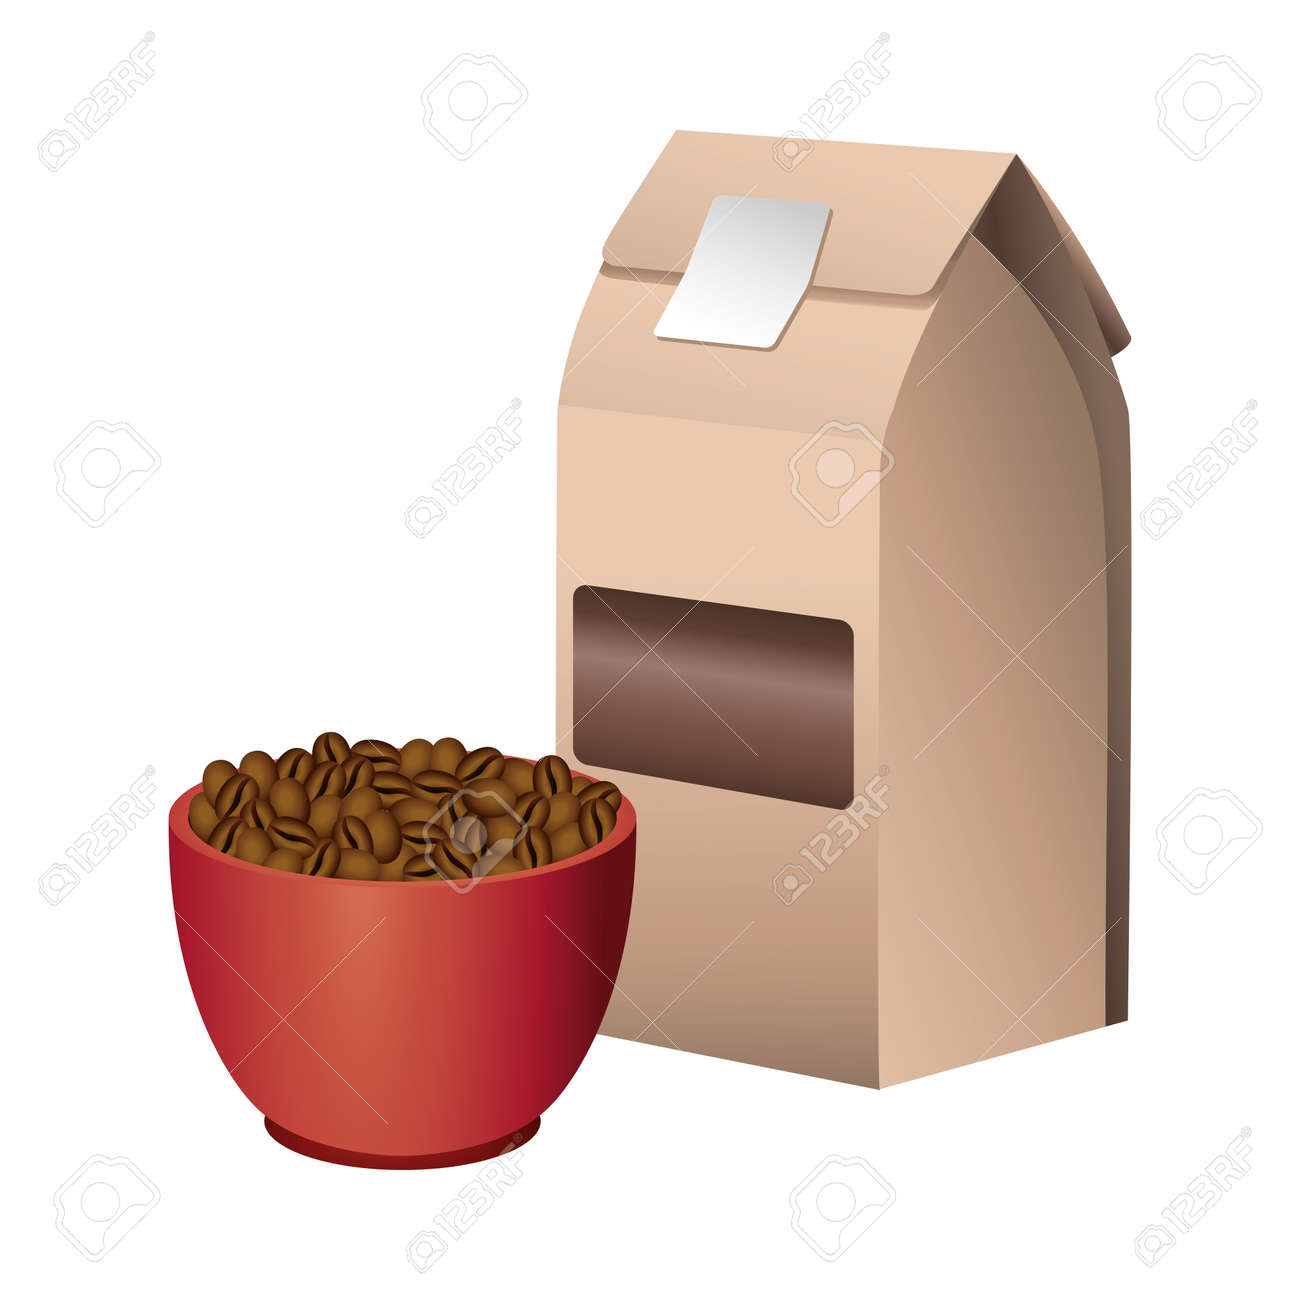 coffee product packing box with grains in cup vector illustration design - 158043380